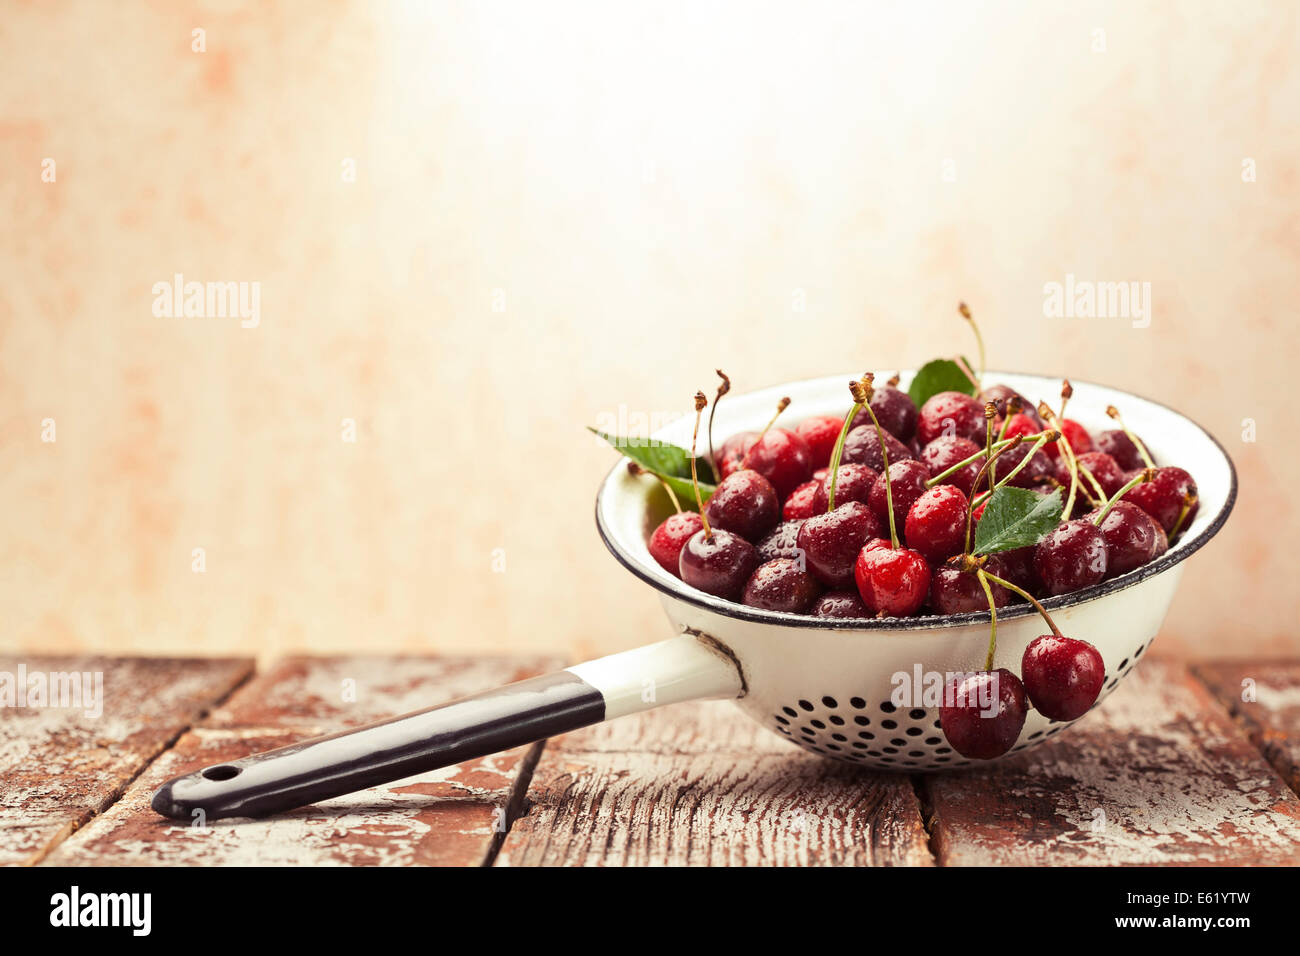 Ripe cherries in vintage colander on wooden rustic background - Stock Image